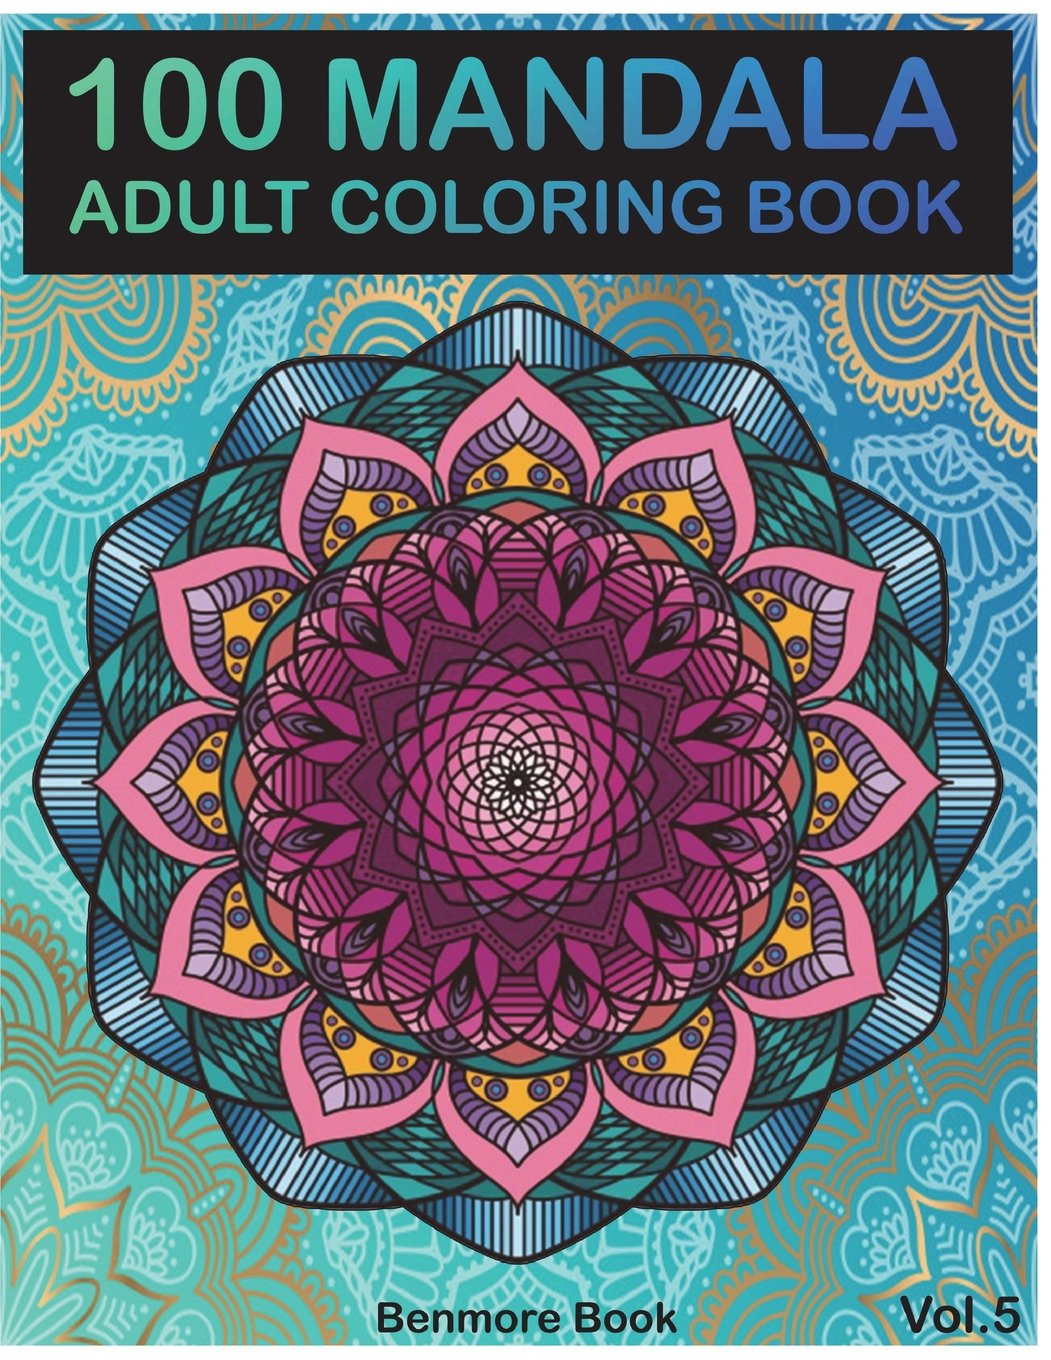 100 Mandala: Adult Coloring Book 100 Mandala Images Stress Management Coloring Book For Relaxation, Meditation, Happiness and Relief & Art Color Therapy(Volume 5) ebook